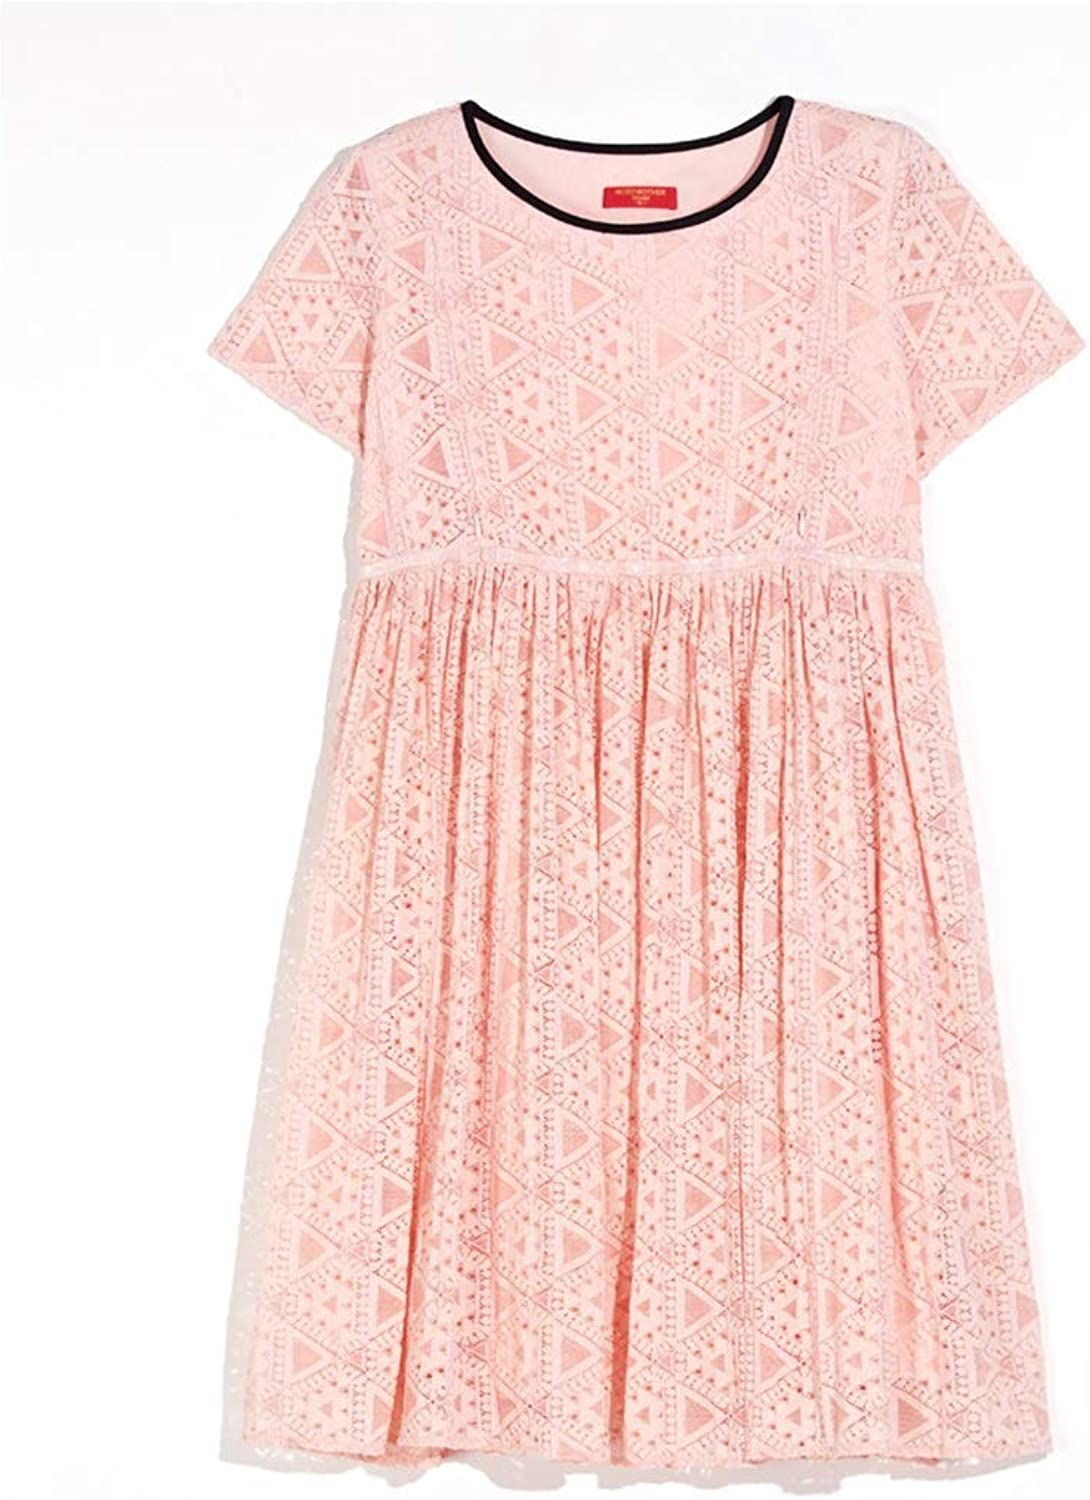 Casual Breastfeeding Dress Short Sleeves Dress Loose ONeck Dress Pregnant Women Lace Skirt Wear to Work (color   Pink, Size   M)